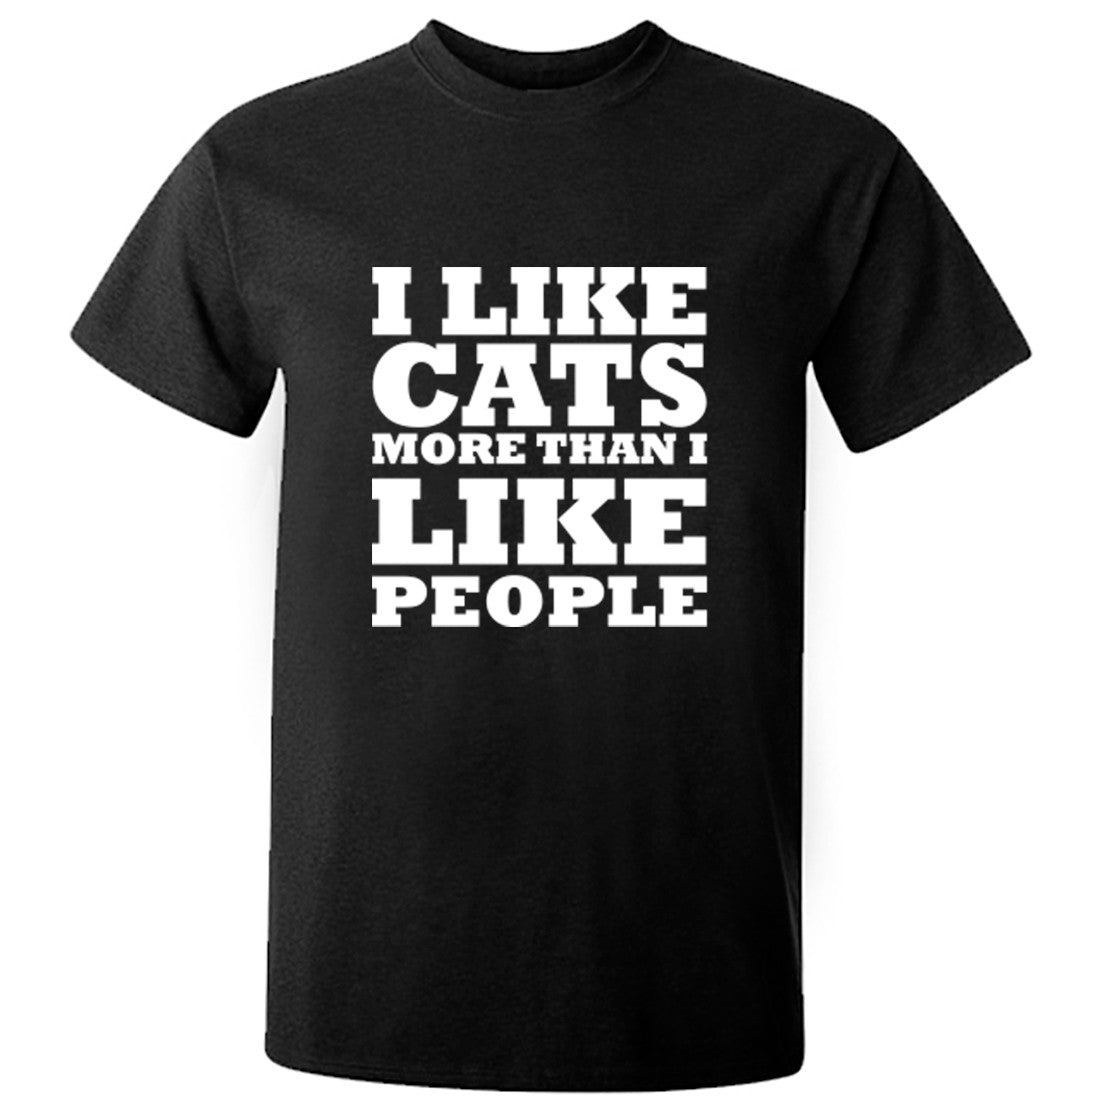 I Like Cats More Than I Like People Unisex Fit T-Shirt K0646 - Illustrated Identity Ltd.